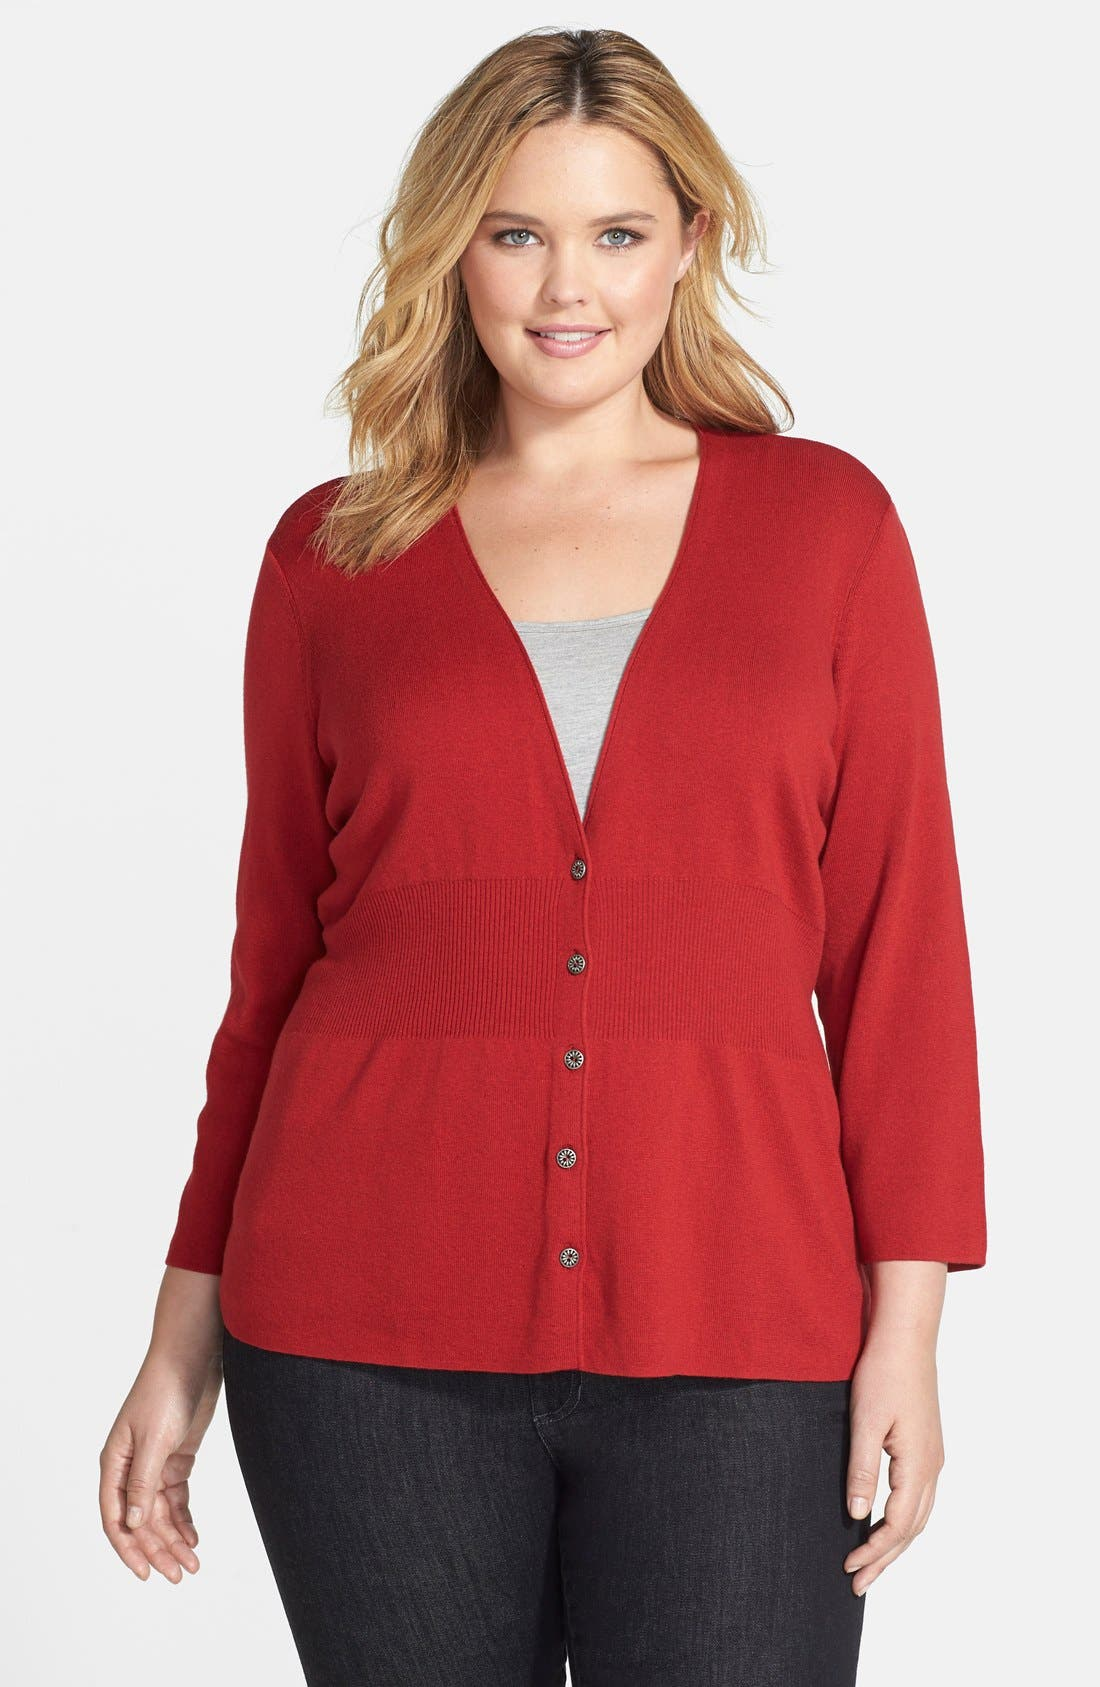 Main Image - NIC+ZOE 'Back of the Chair' Cardigan (Plus Size)